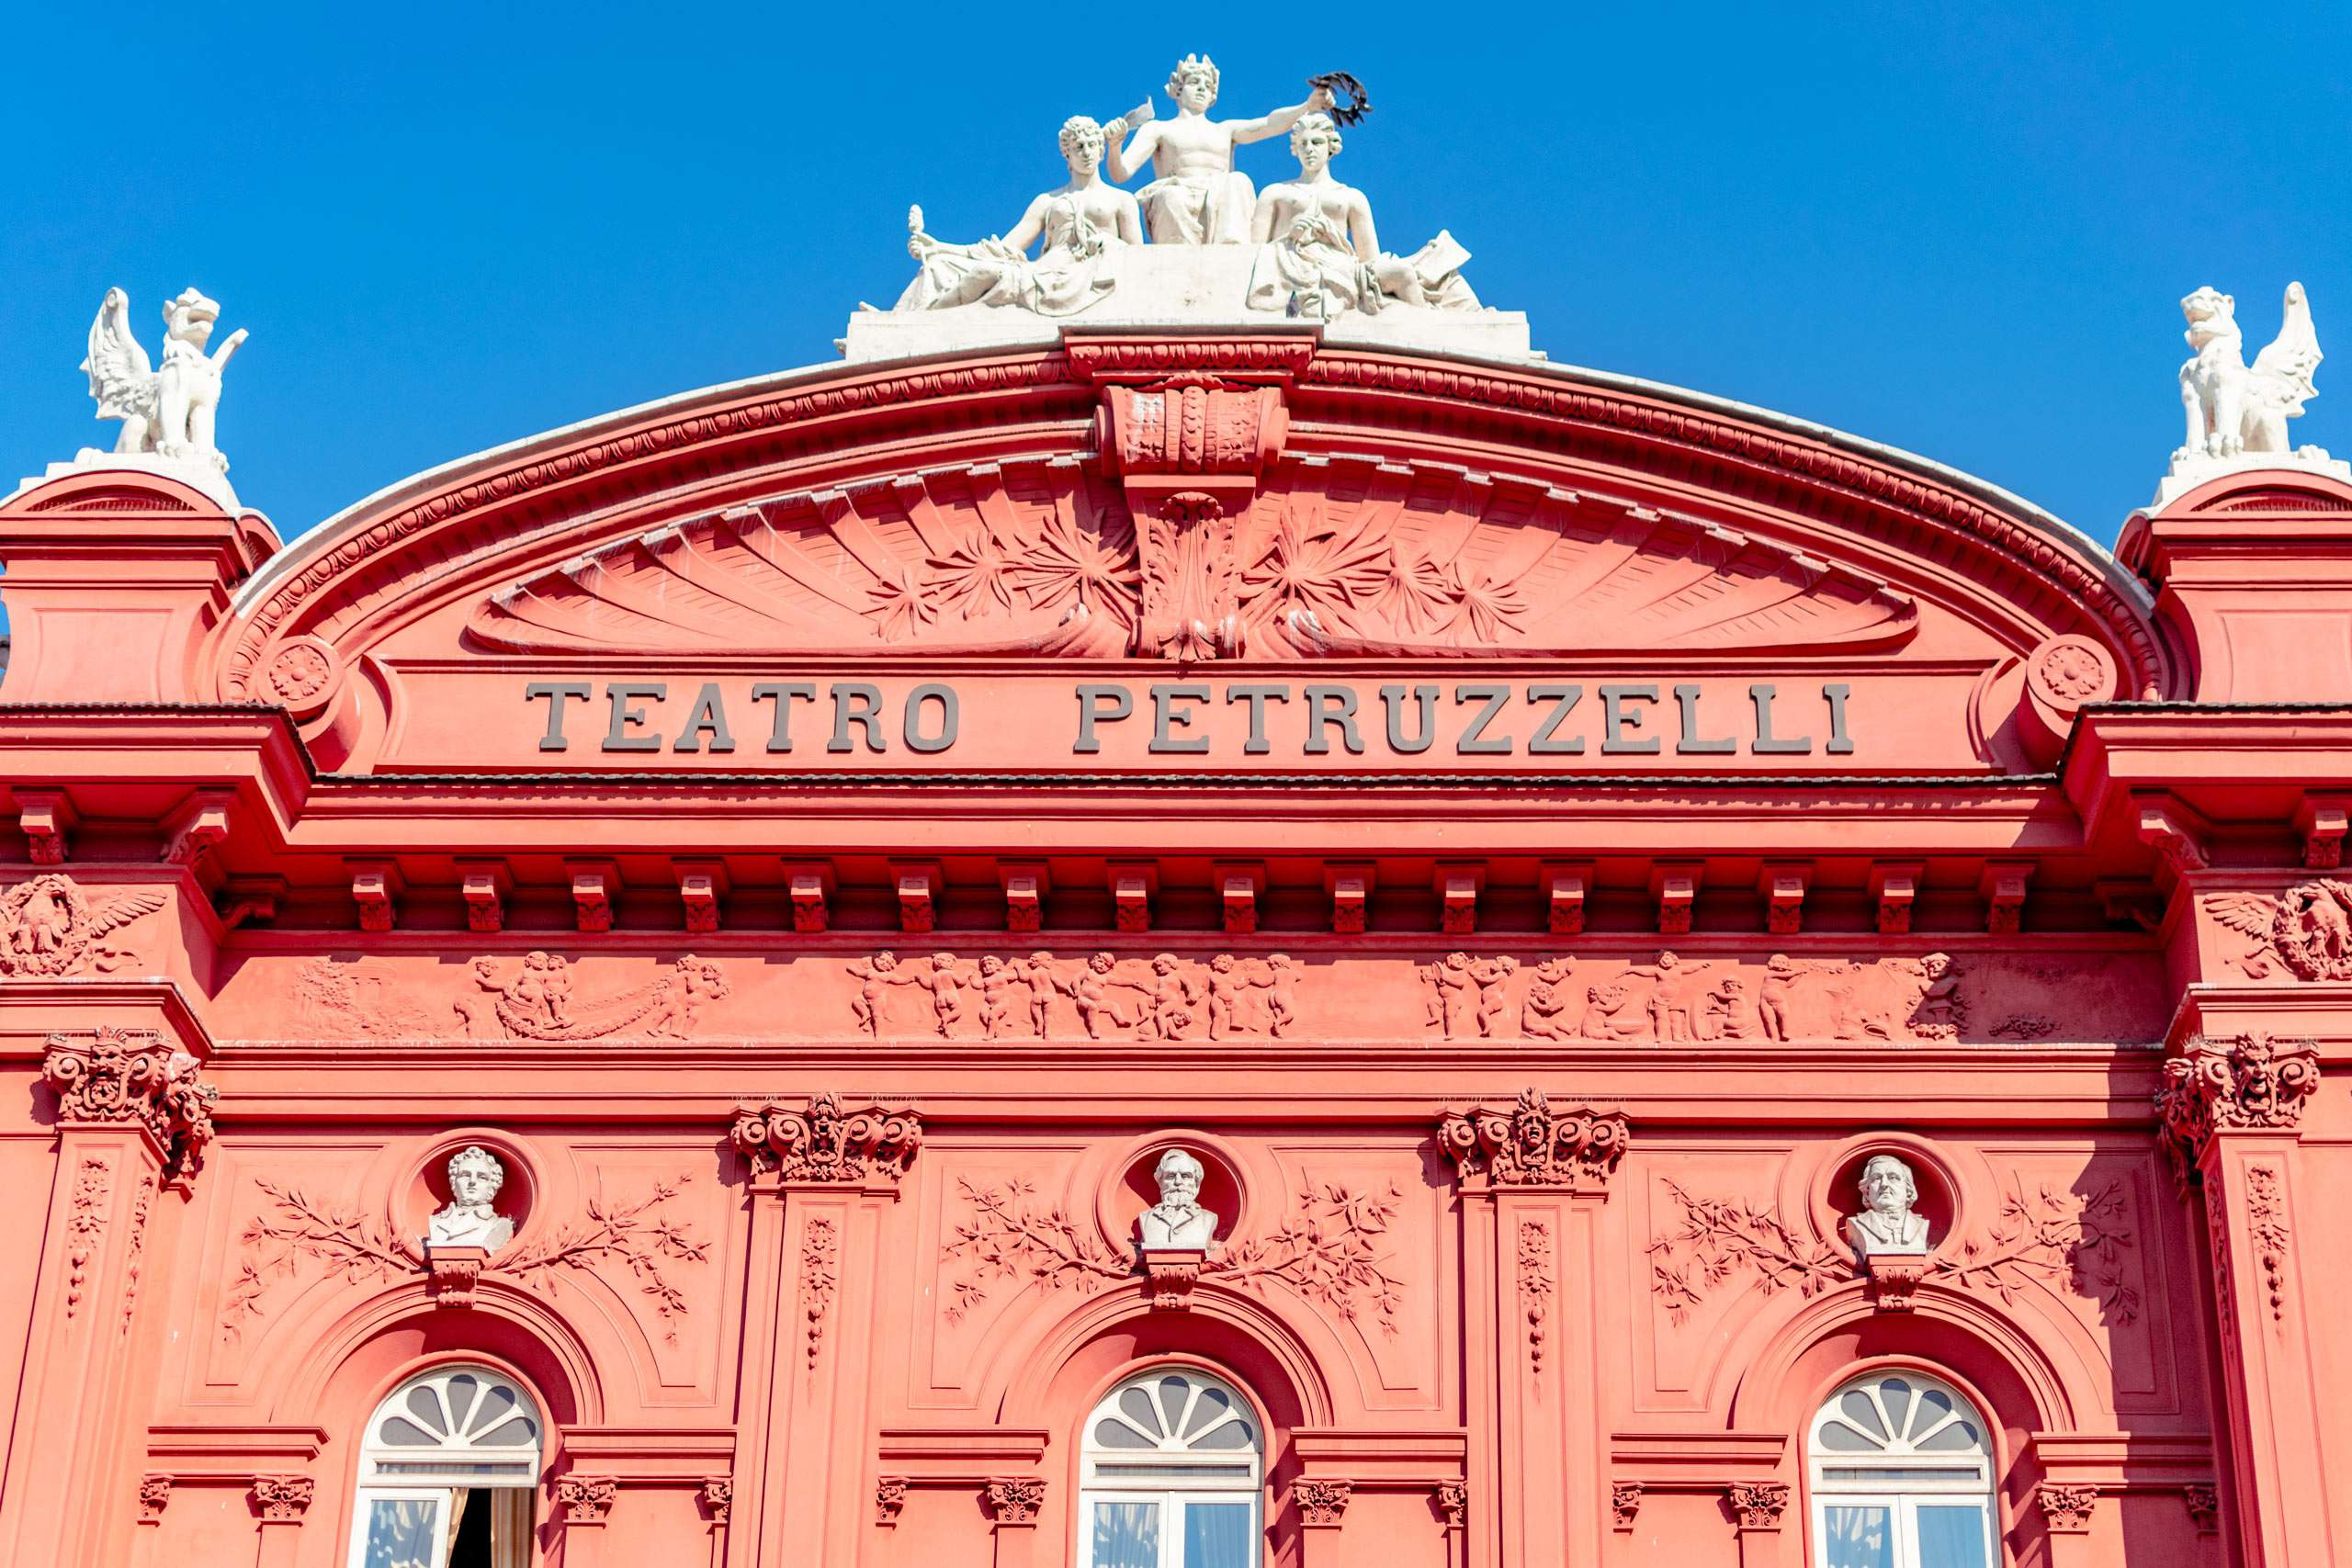 Detail of a Petruzzelli Theatre in the old town of Bari city.